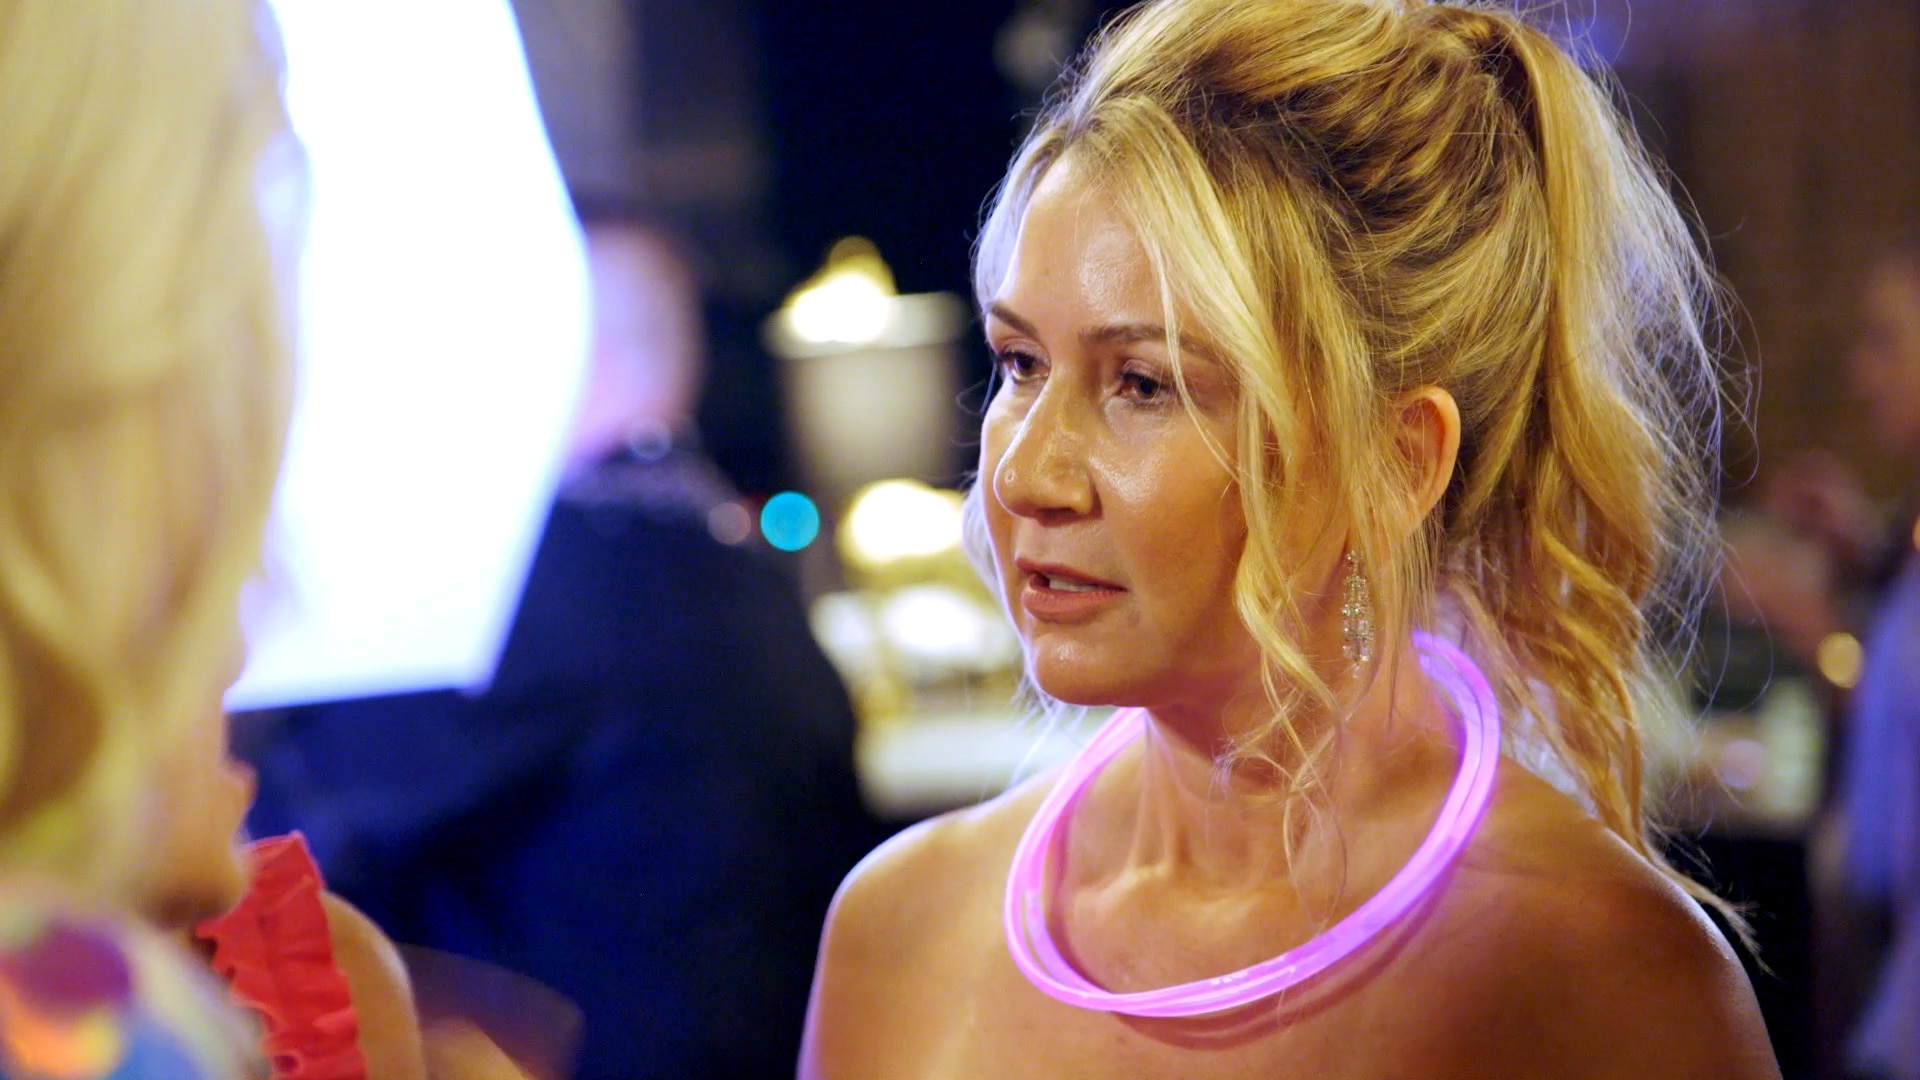 Watch The Real Housewives of Dallas Excerpt: LeeAnne